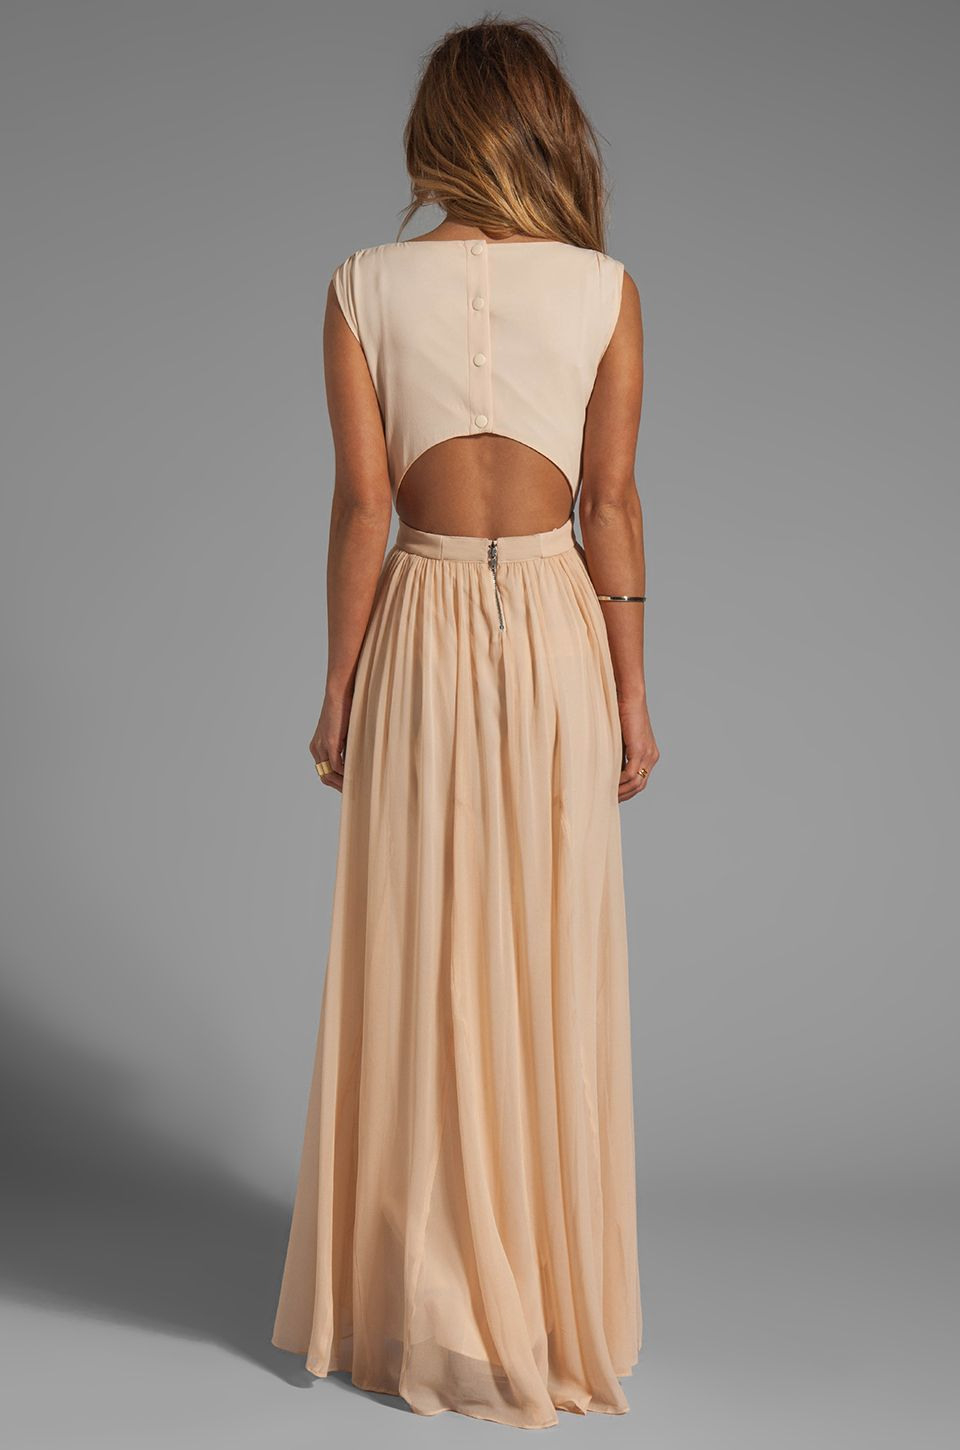 Alice + Olivia Triss Sleeveless Maxi Dress With Leather Trim